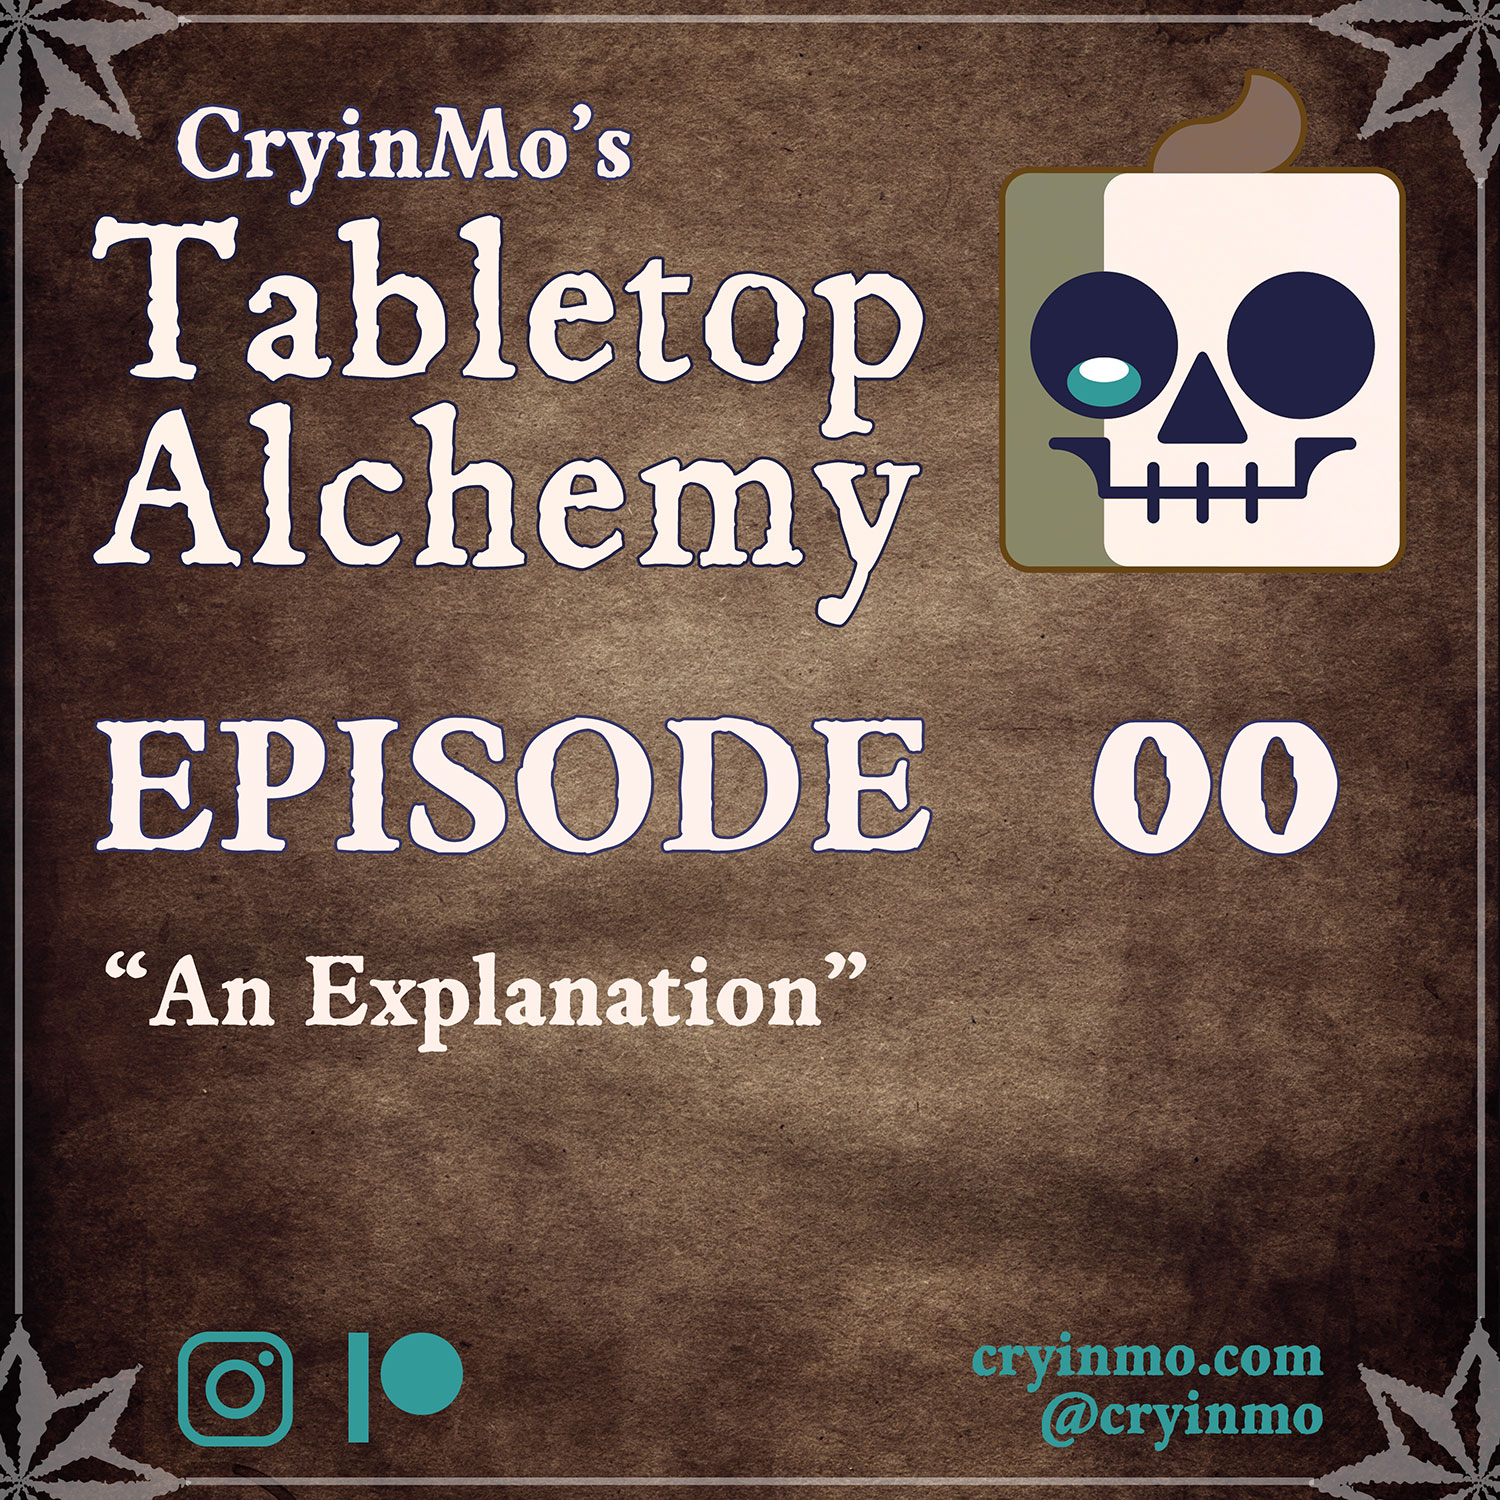 CryinMo's Tabletop Alchemy podcast Episode 0